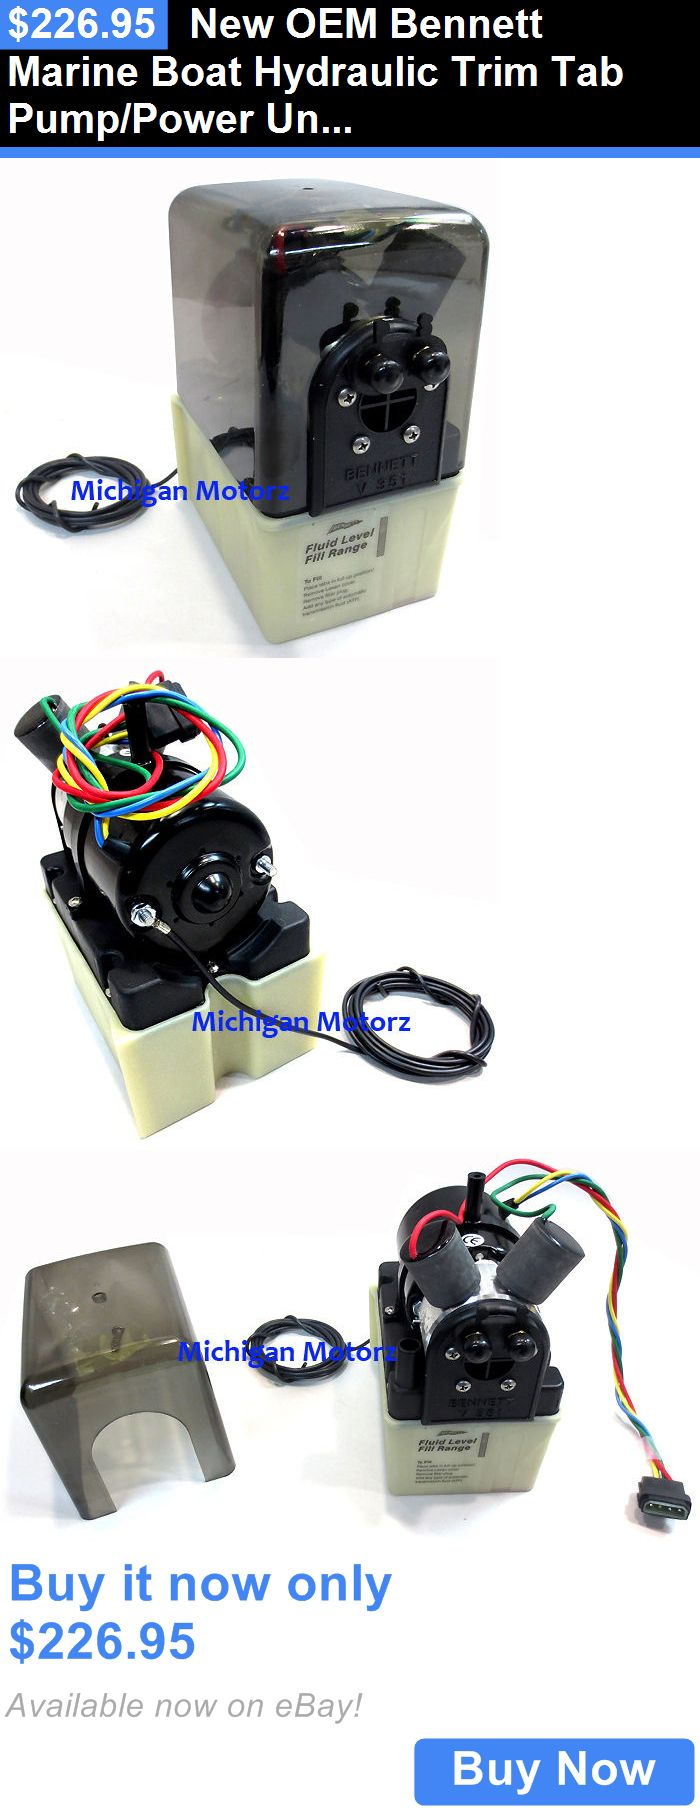 hight resolution of 10 best fishnlight images on pinterest boat electrical wiring diagram ultra vee boat parts new oem